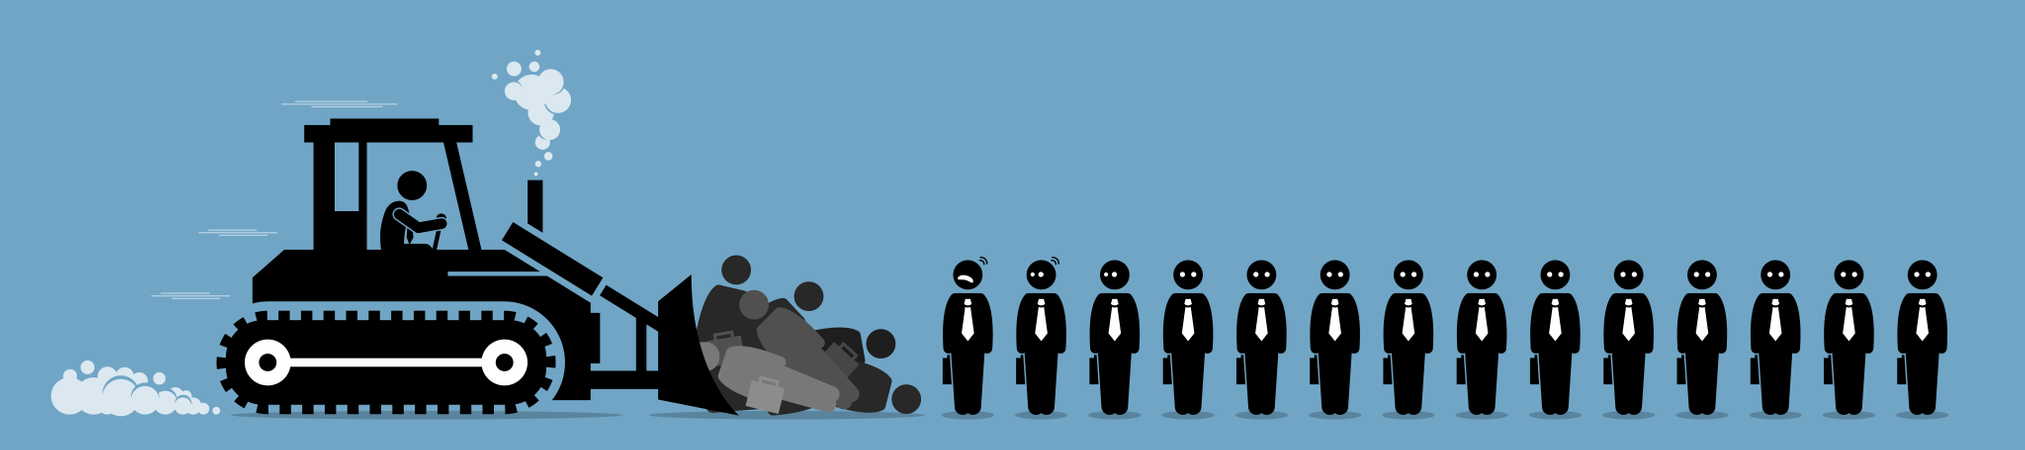 Retrenchment, company worker layoffs, and job cut Illustration